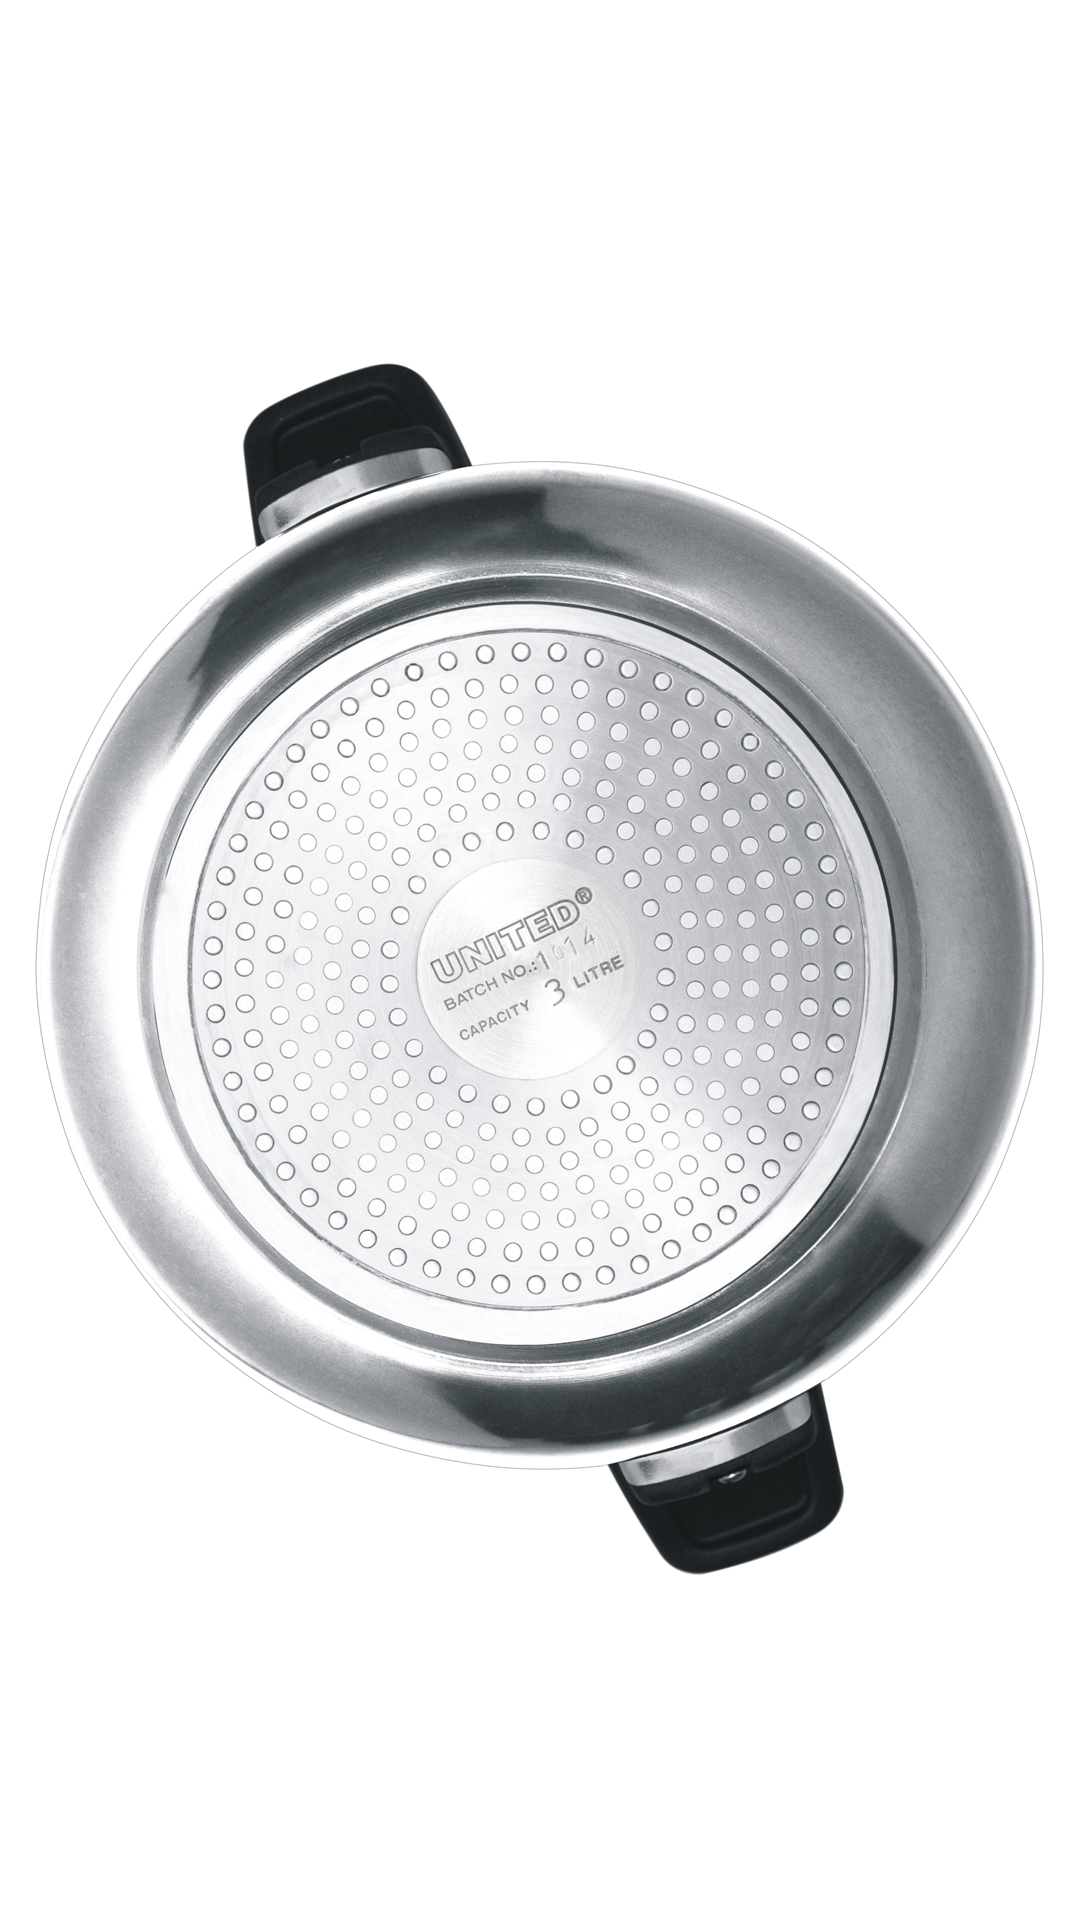 United Ucook Eco-Smart Cooker 2 In1